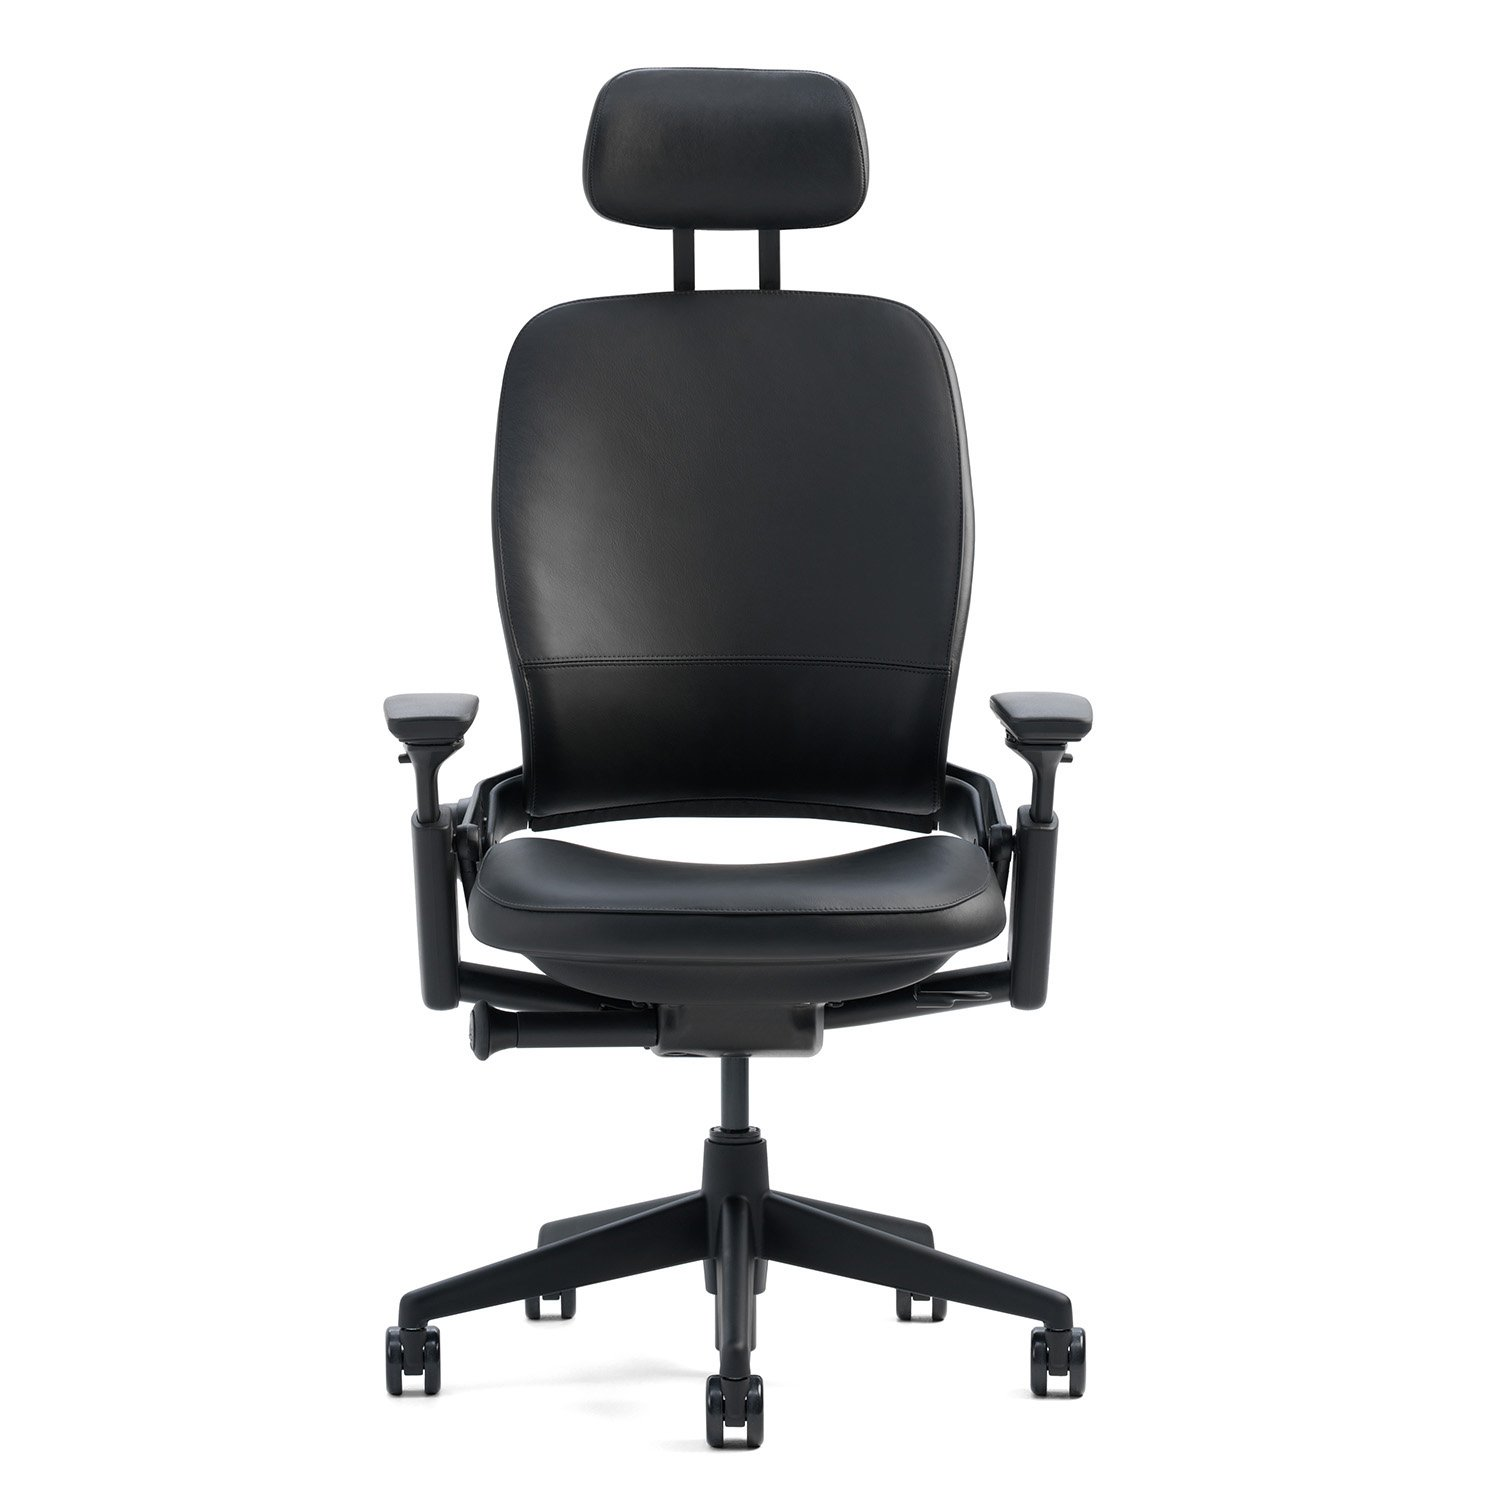 Aeron chair headrest - Amazon Com Steelcase Leap Desk Chair With Headrest In Buzz2 Black Fabric Highly Adjustable Arms Black Frame And Base Standard Carpet Casters Kitchen